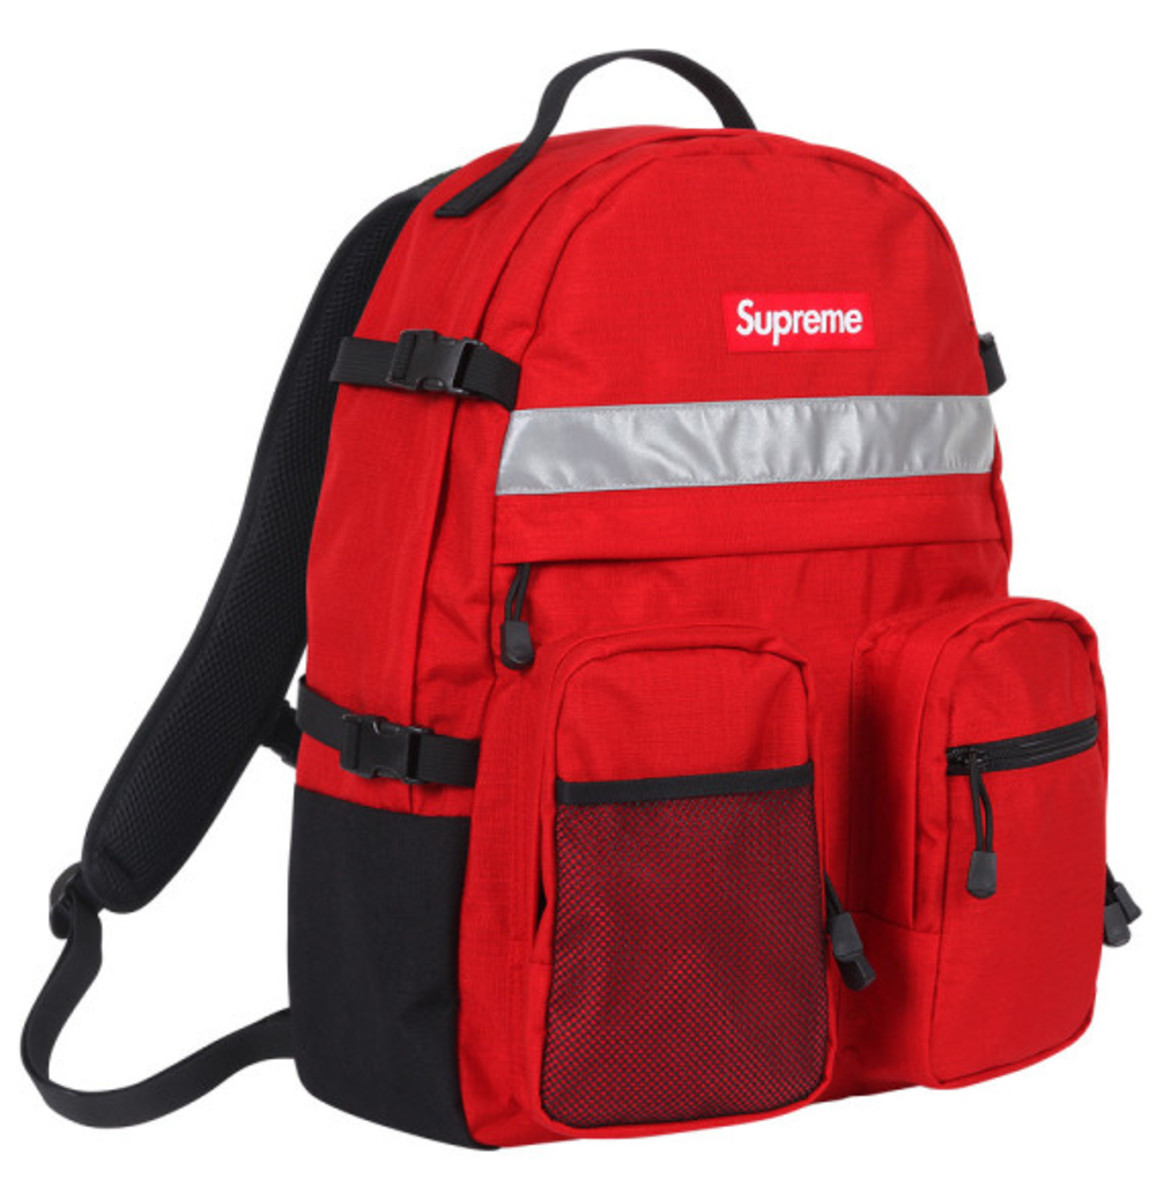 supreme-fall-winter-2014-accessories-and-gear-collection-05